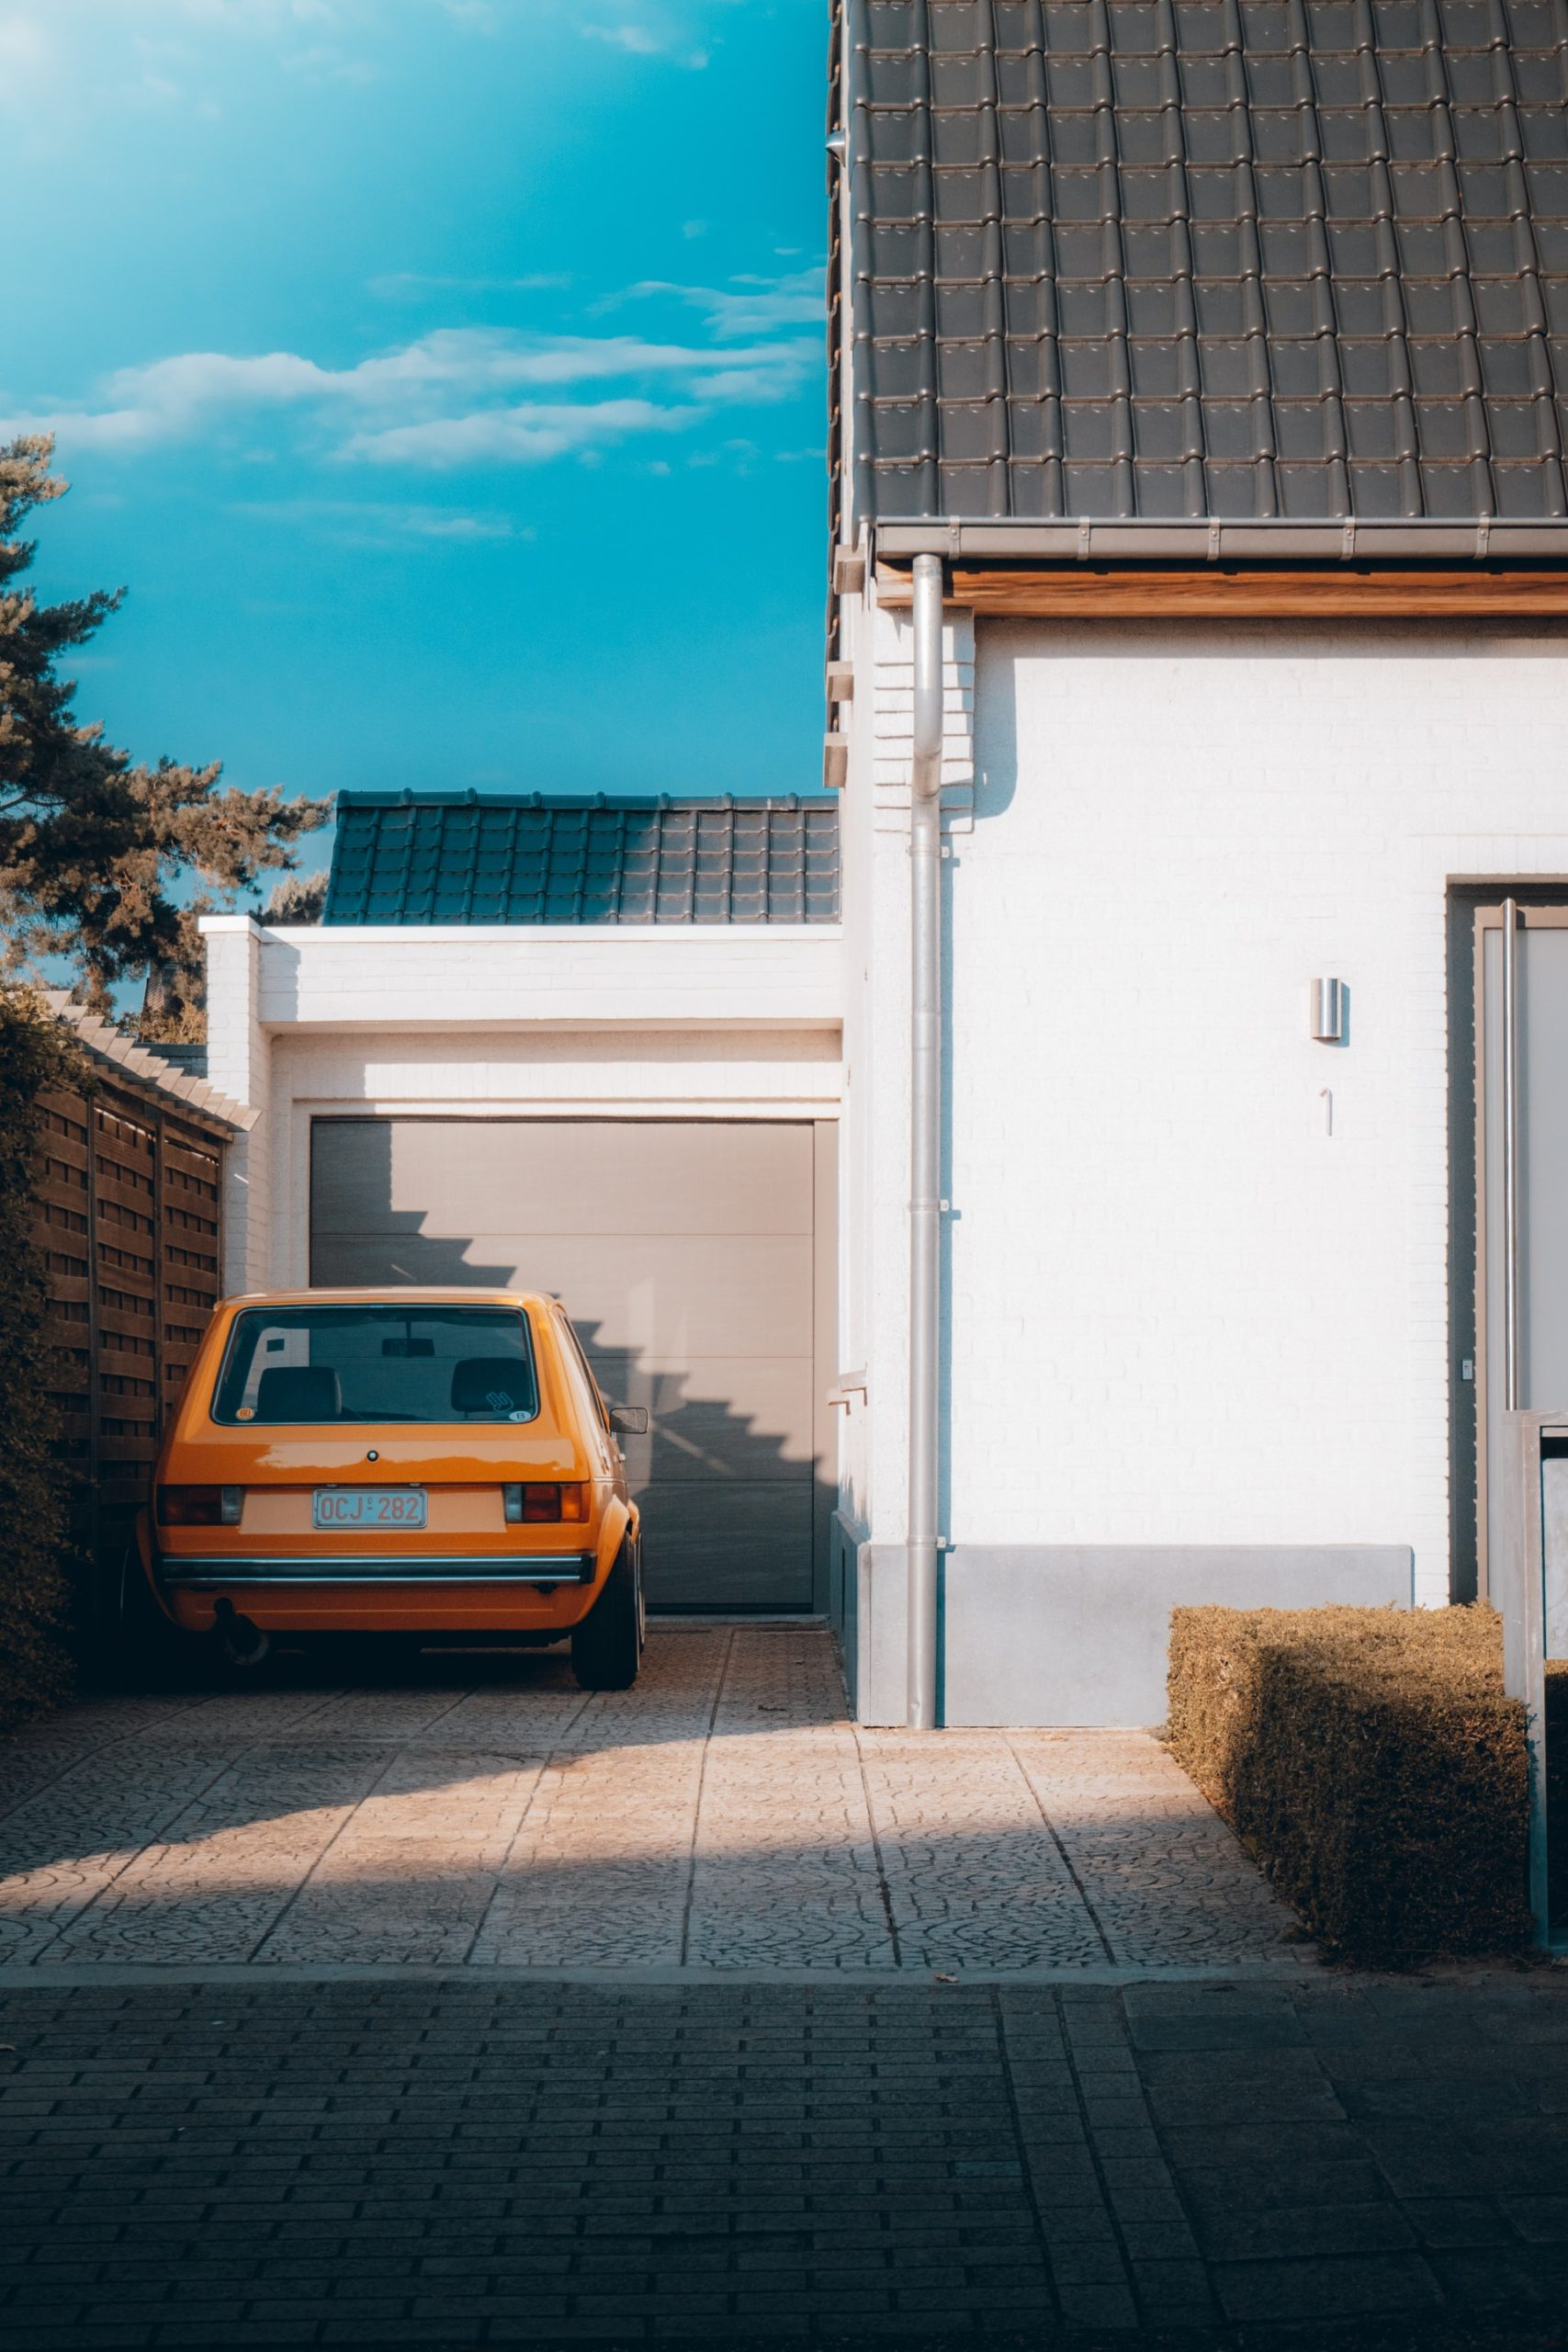 Driveway Backover Accidents Article Image